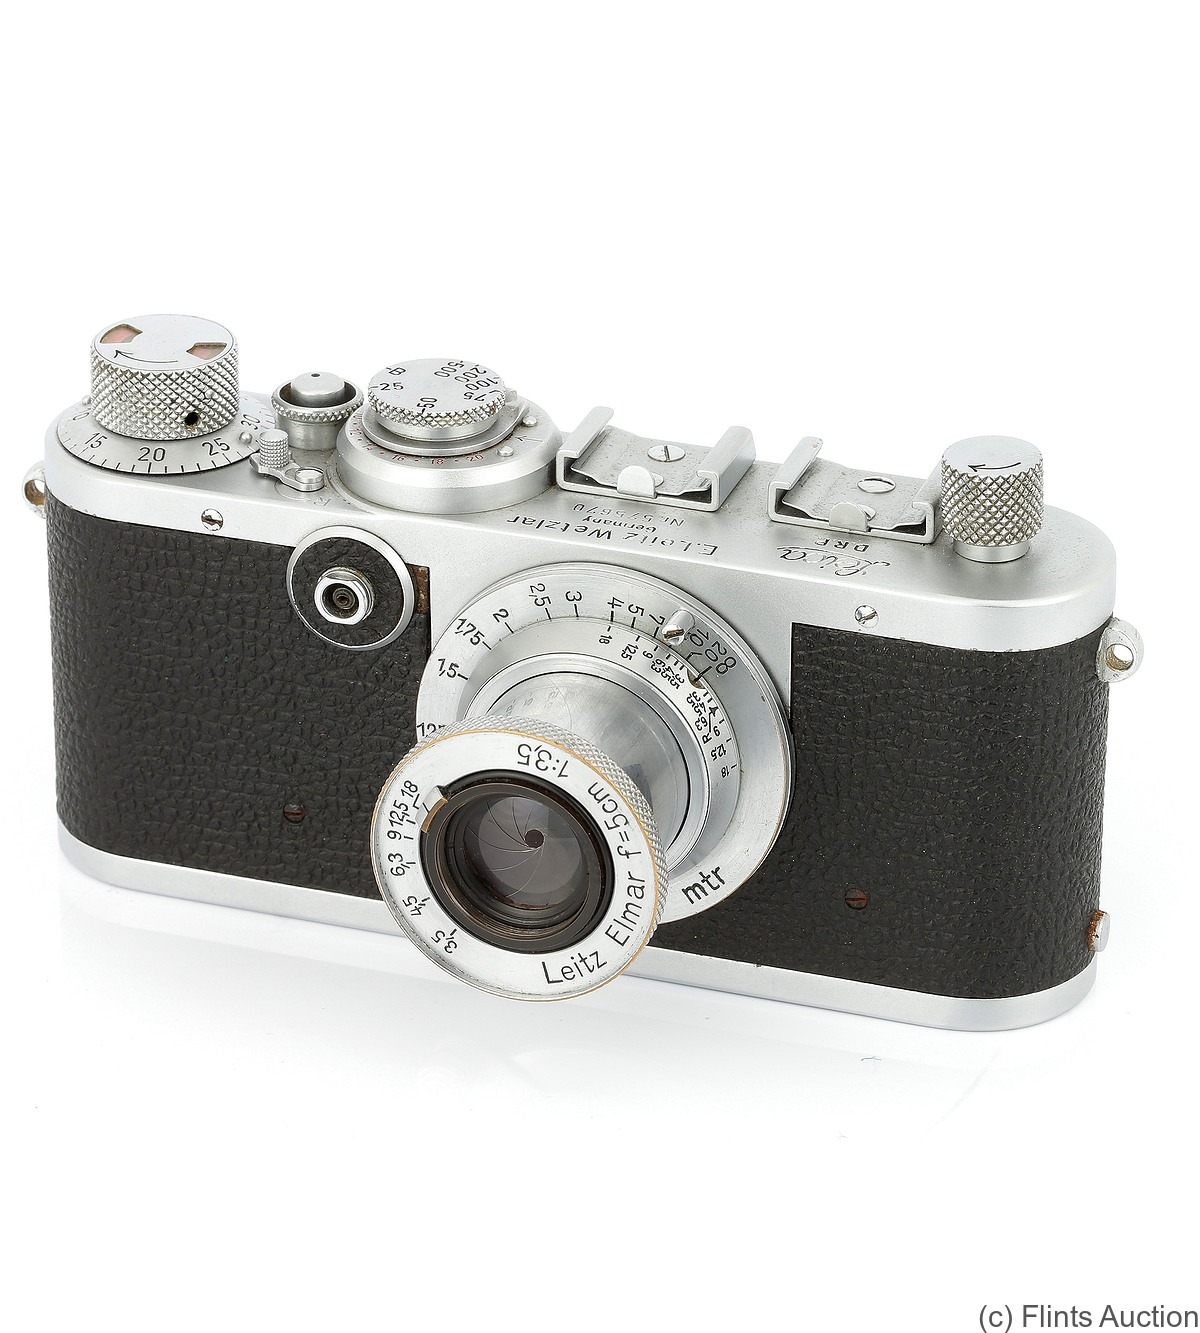 Leitz: Leica If (red dial) camera